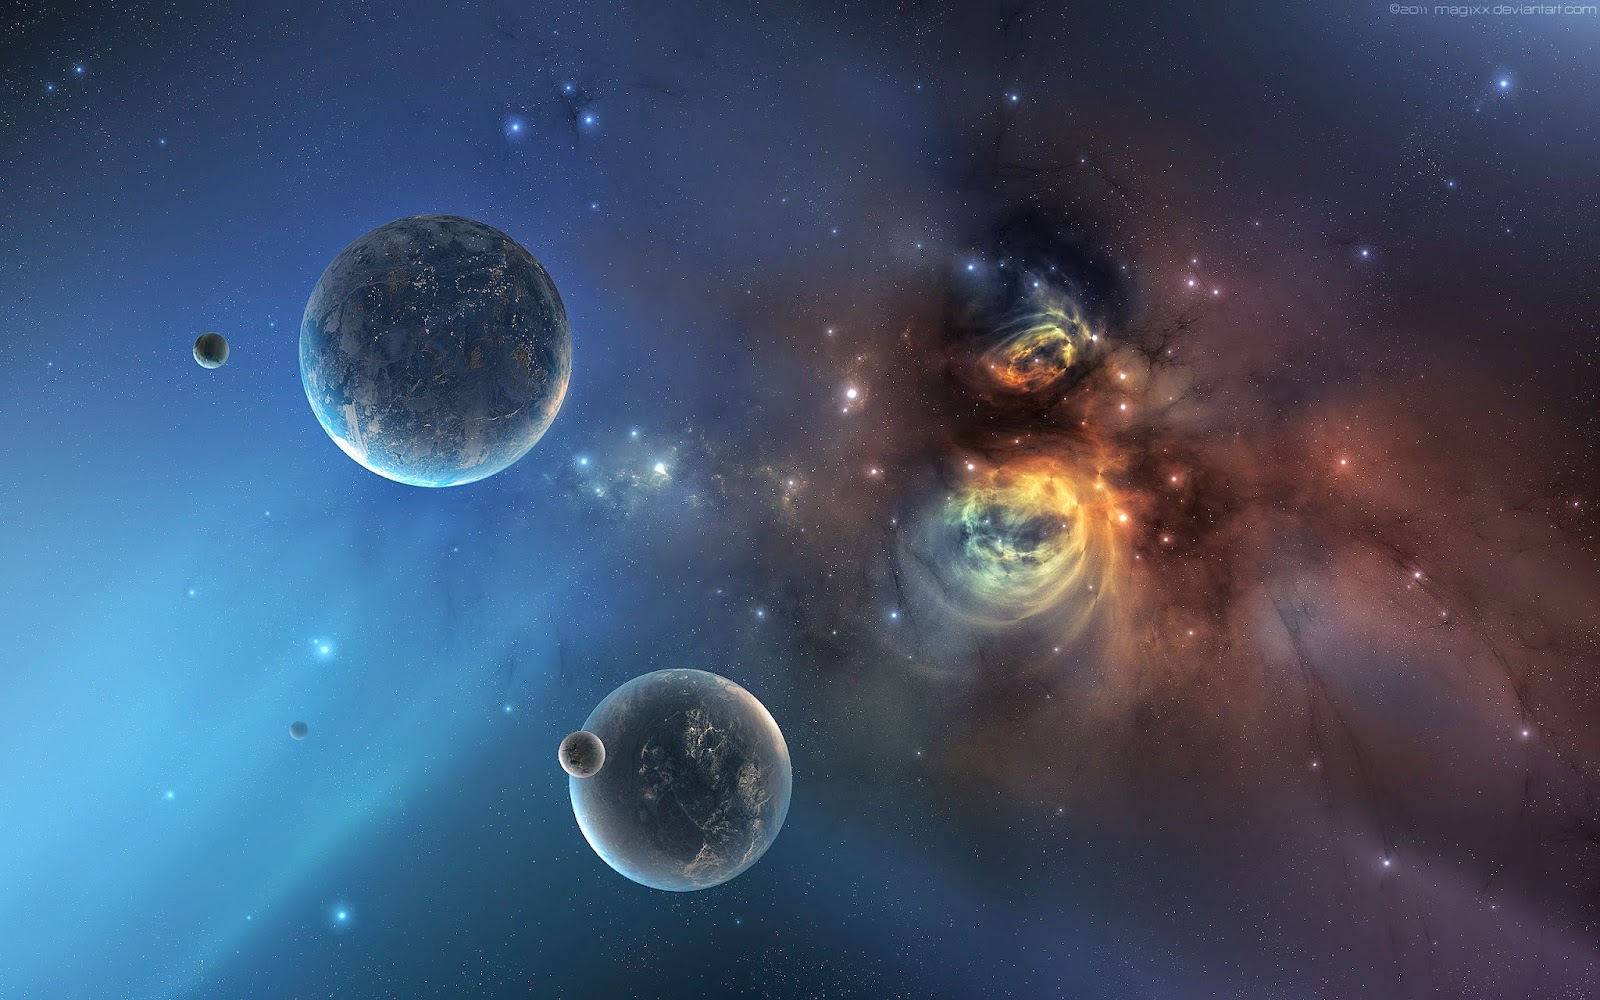 galaxies in the universe amazing - photo #20